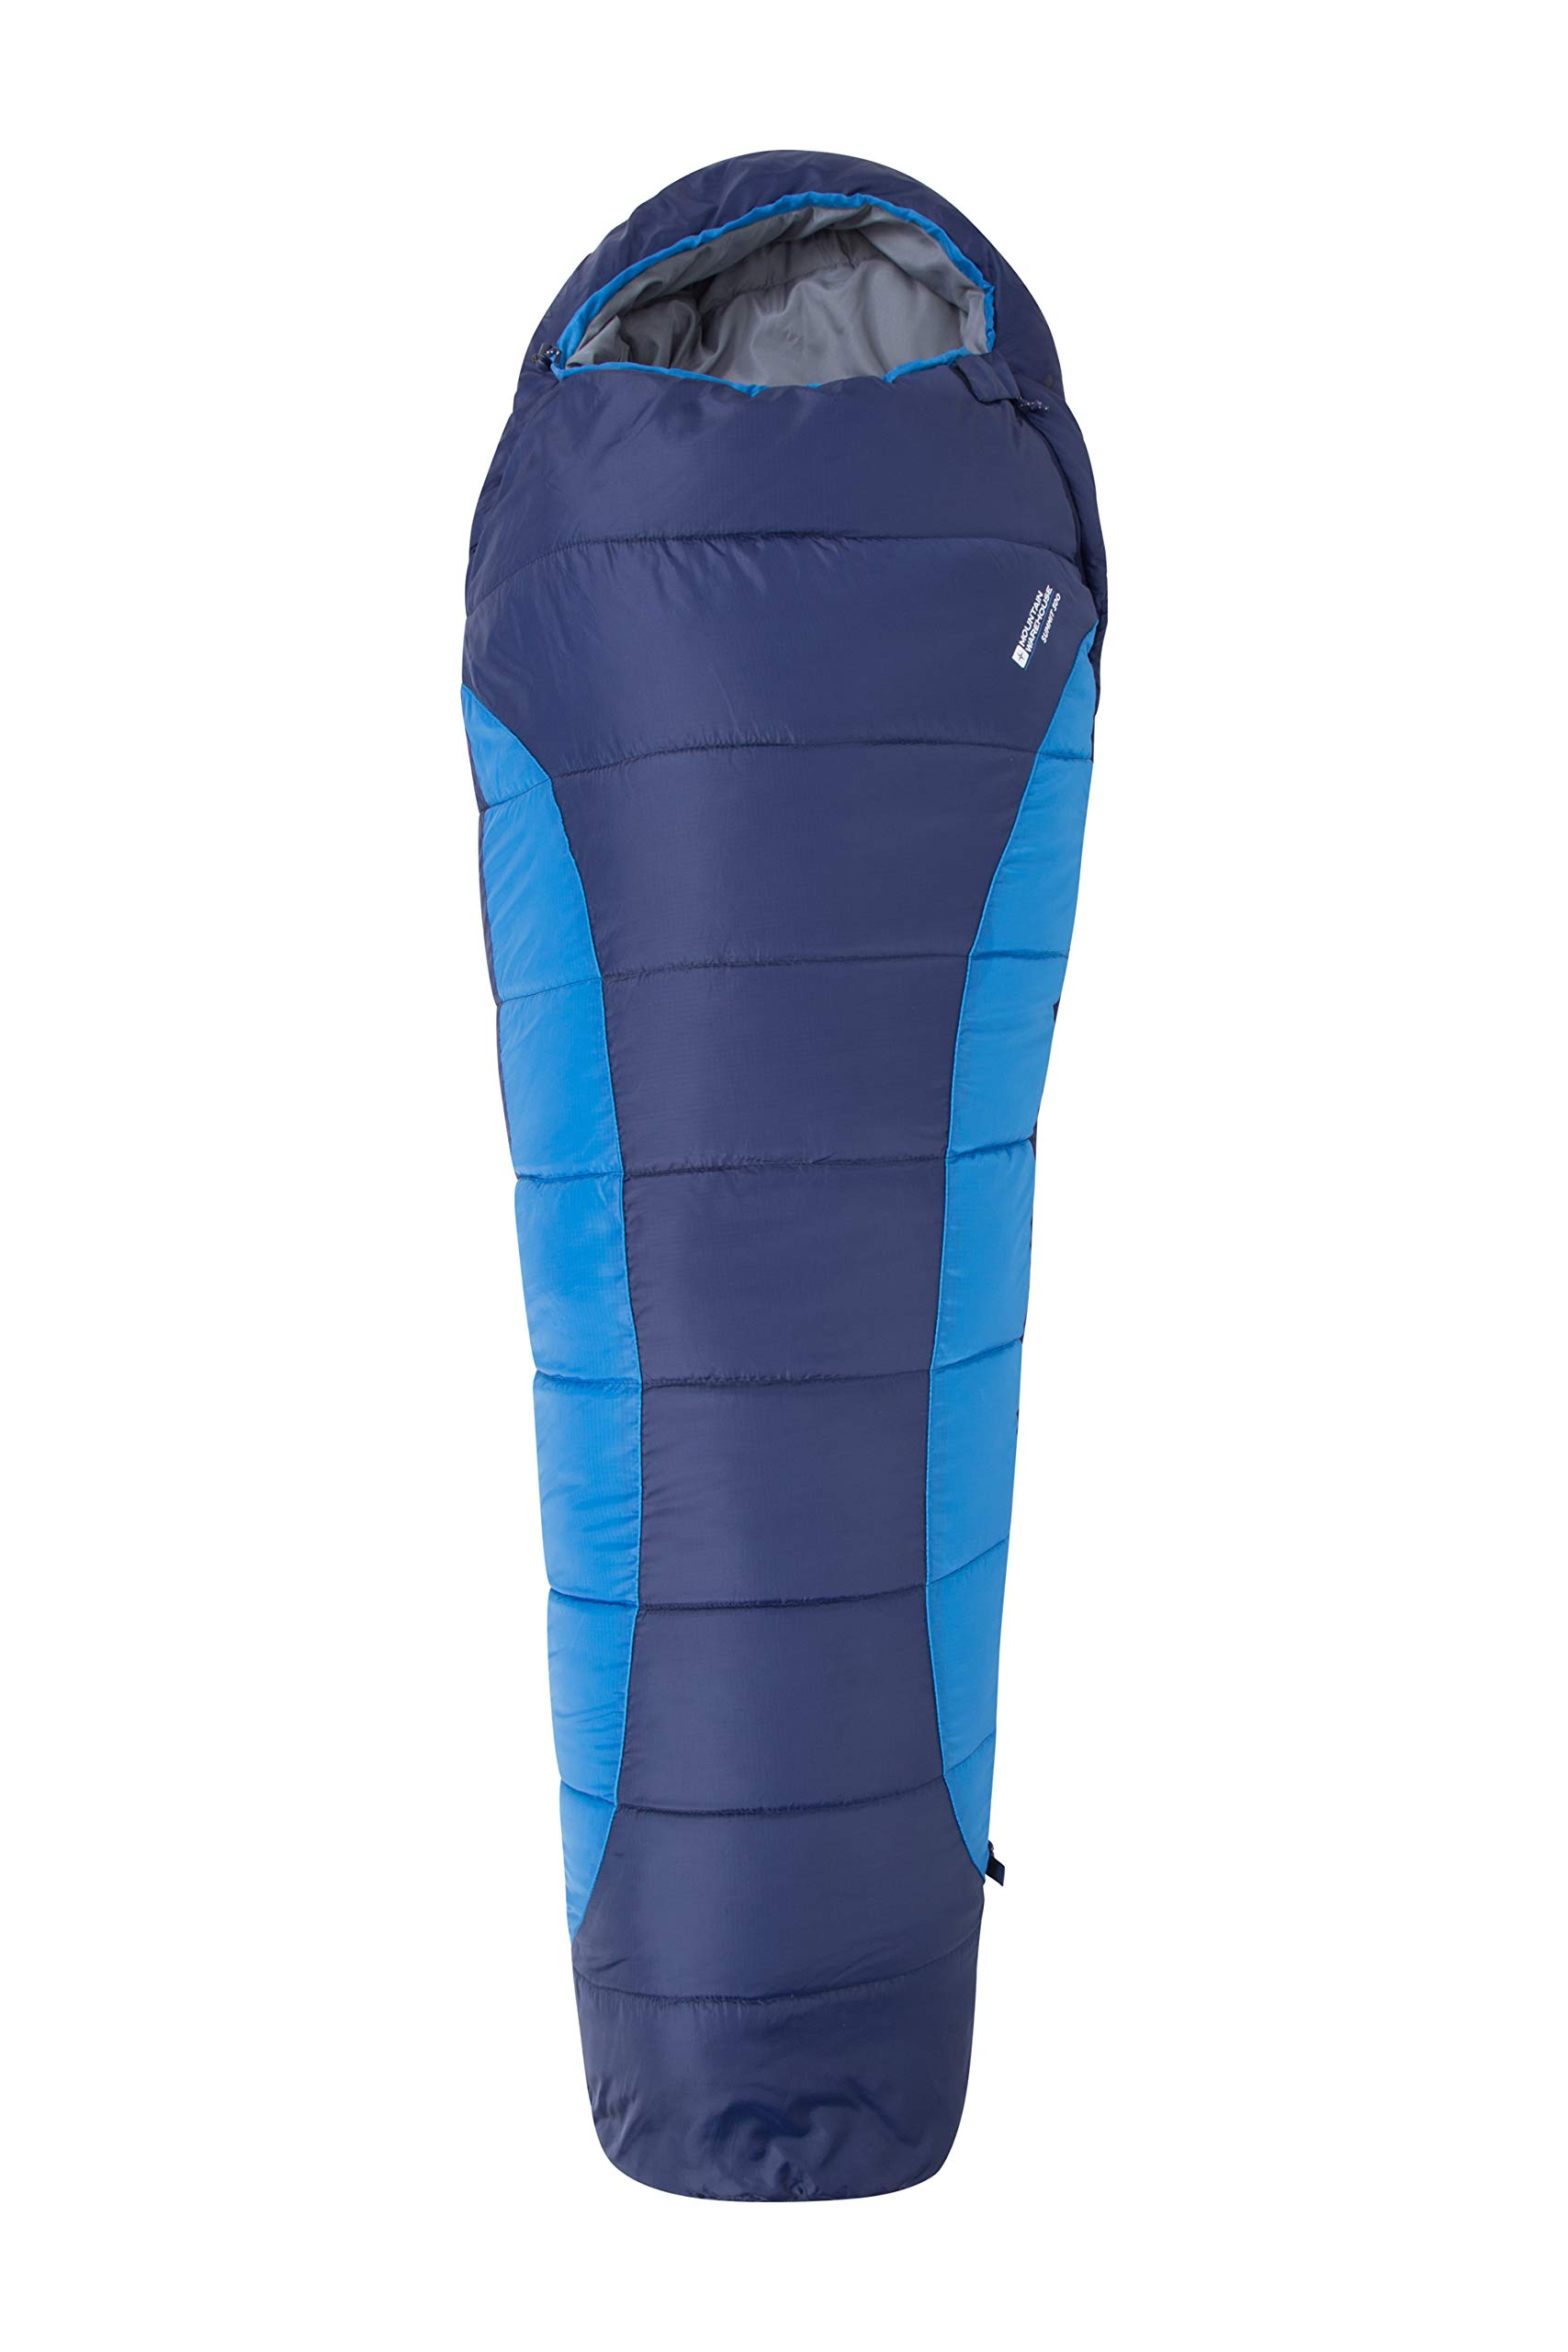 Mountain Warehouse Saco de Dormir Summit 300-23 x 41 cm - Cómodo, Saco